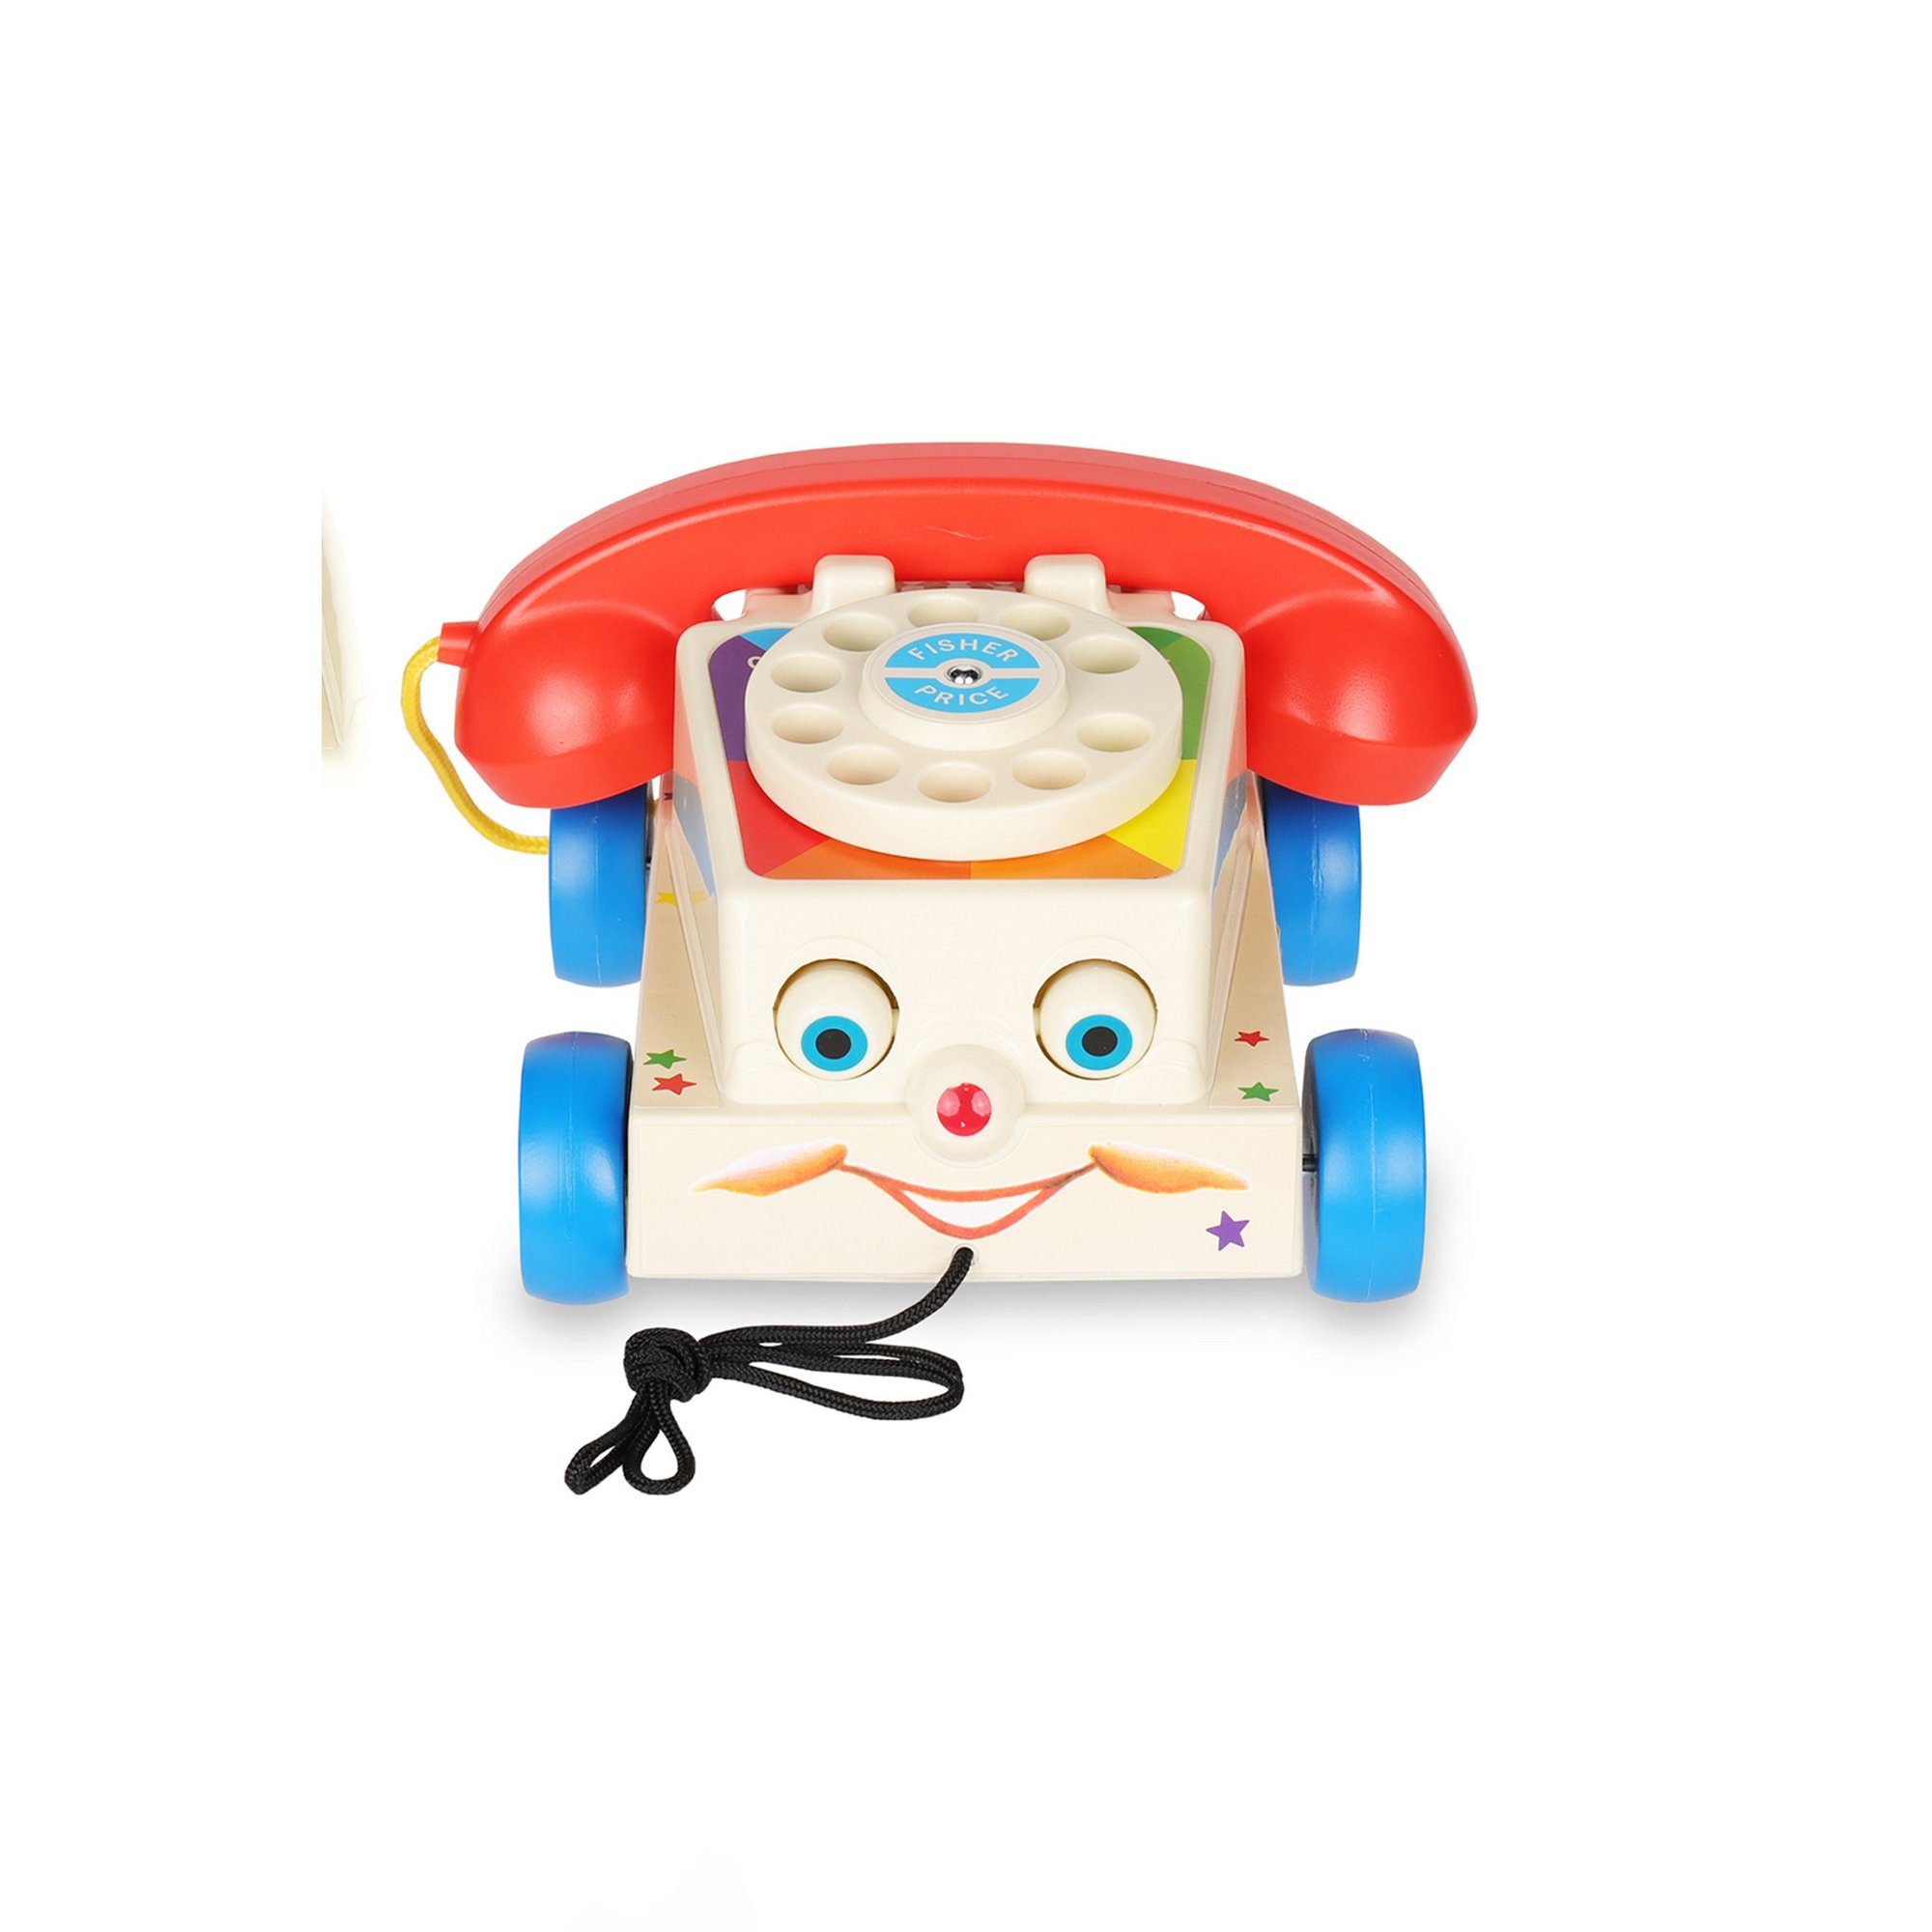 Image of Fisher Price Classic Chatter Phone